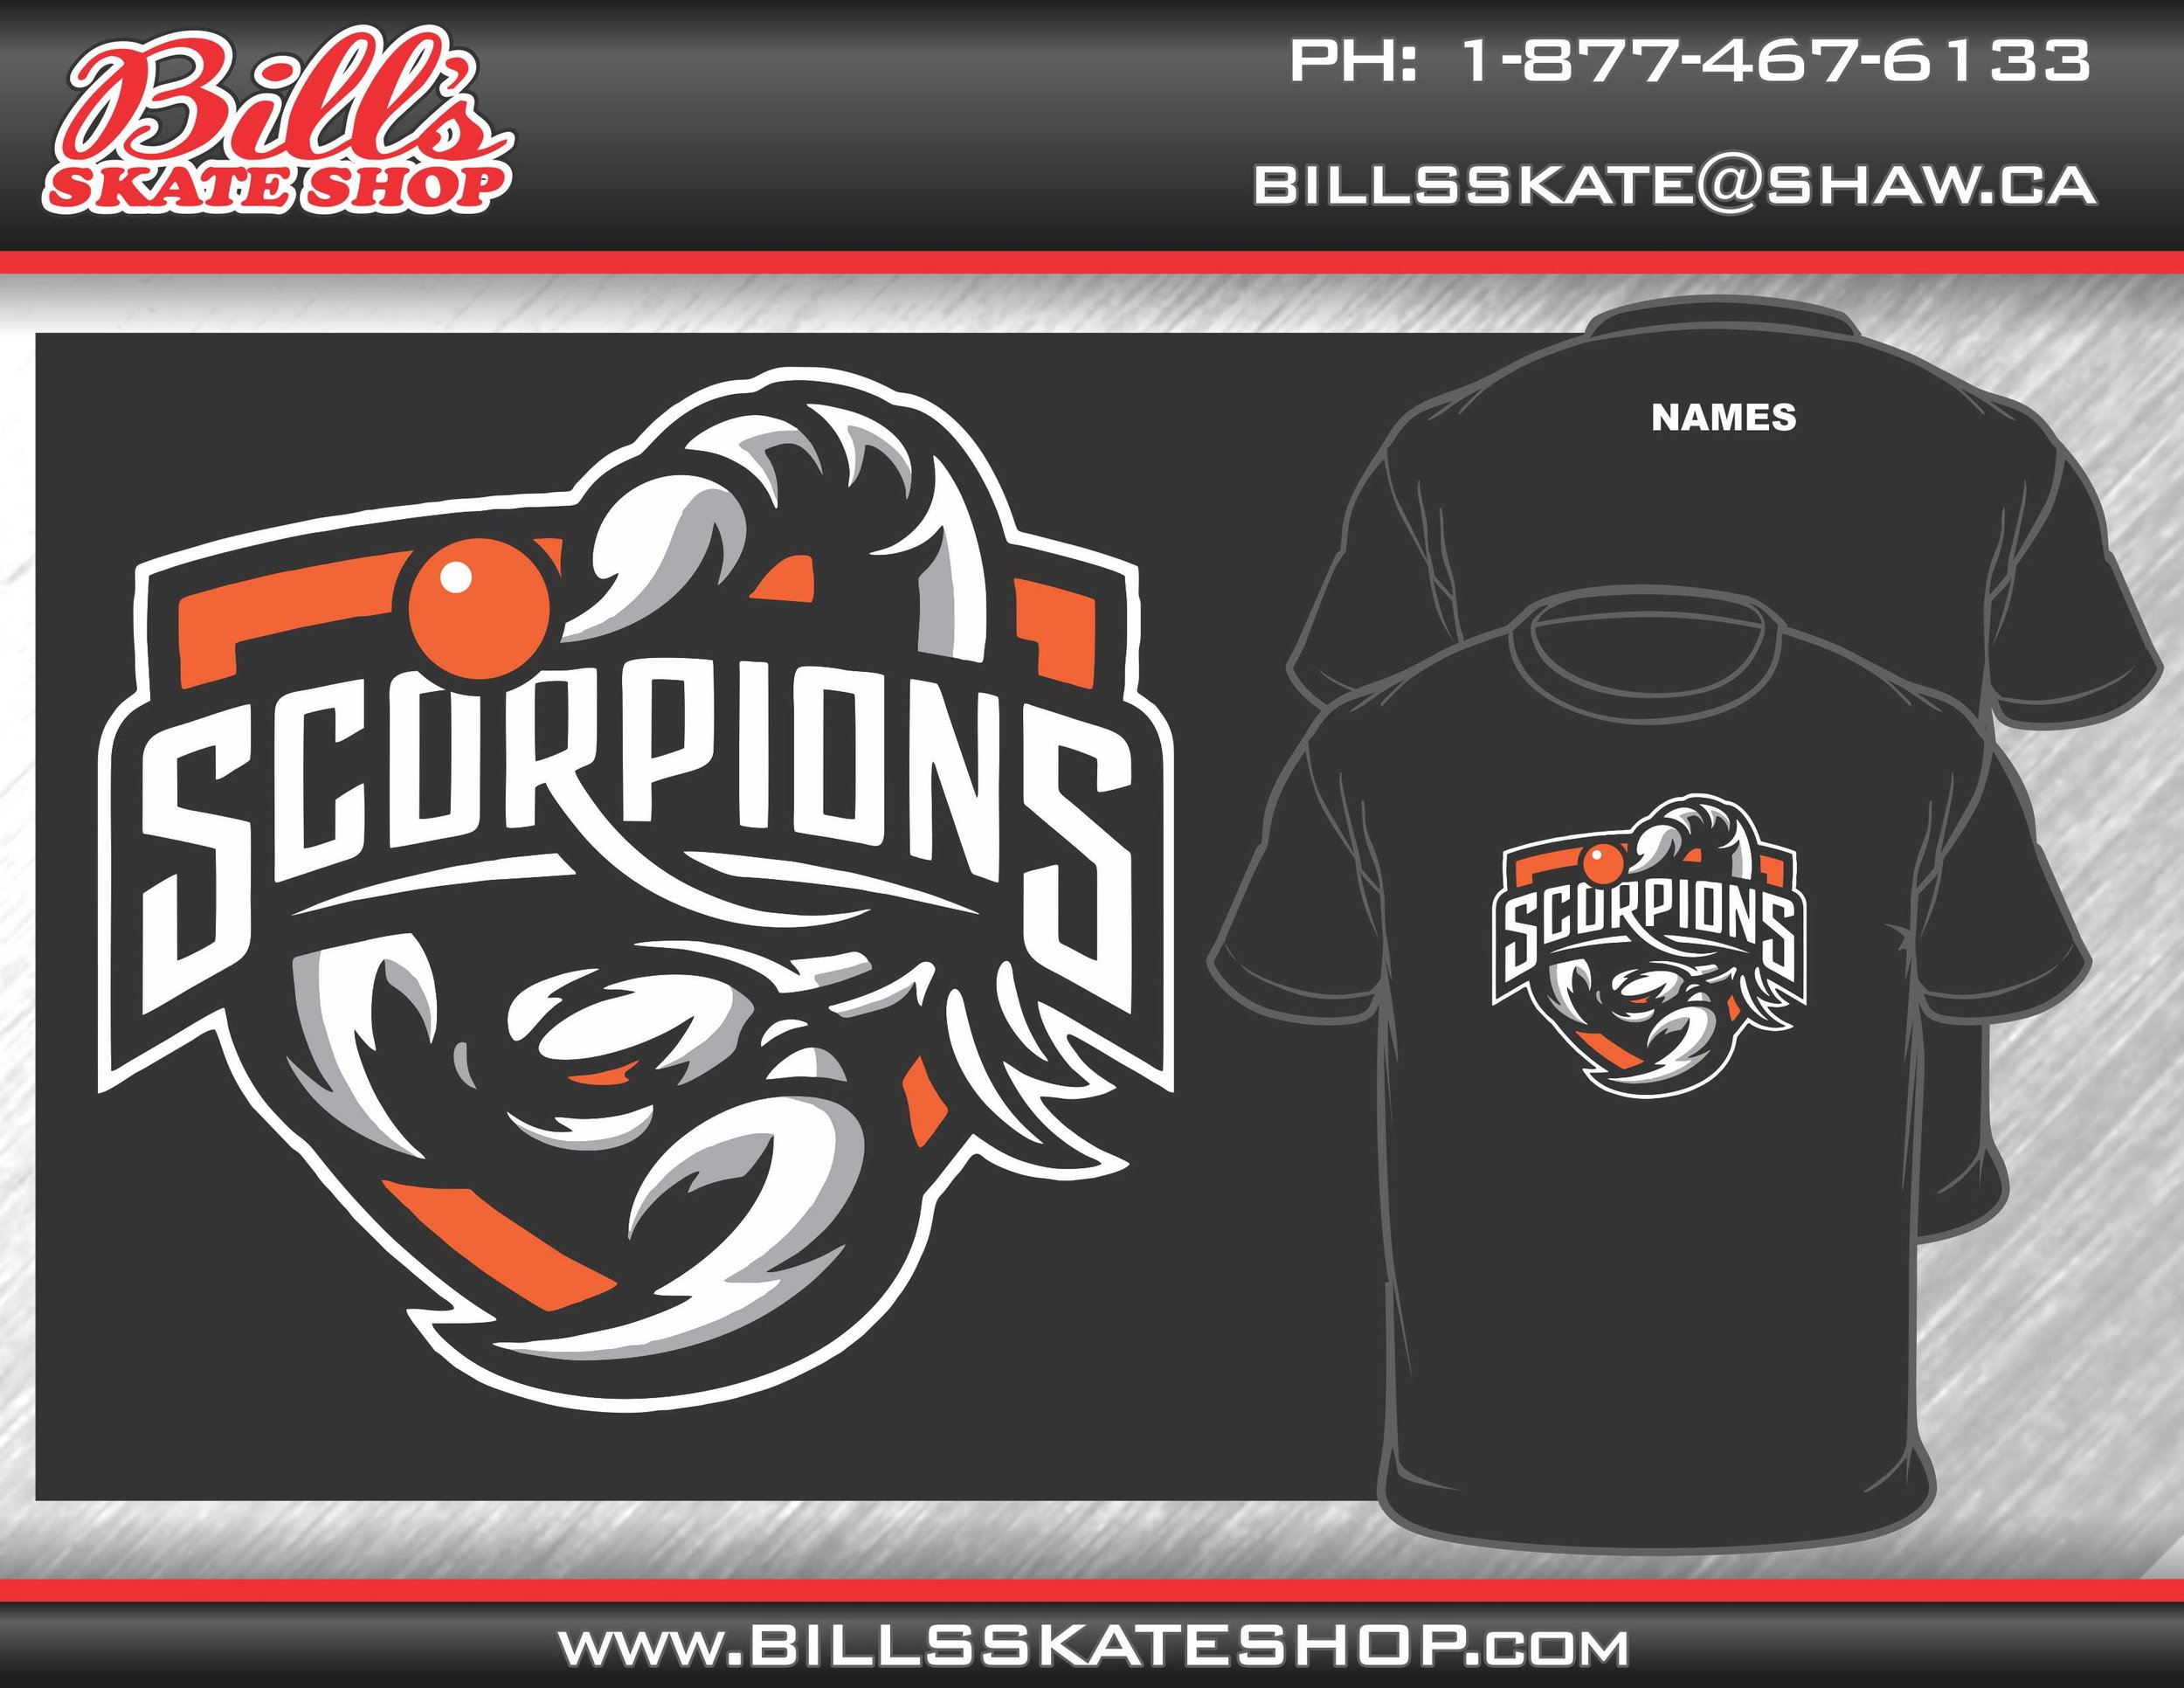 Scorpions Ball Hockey.jpg